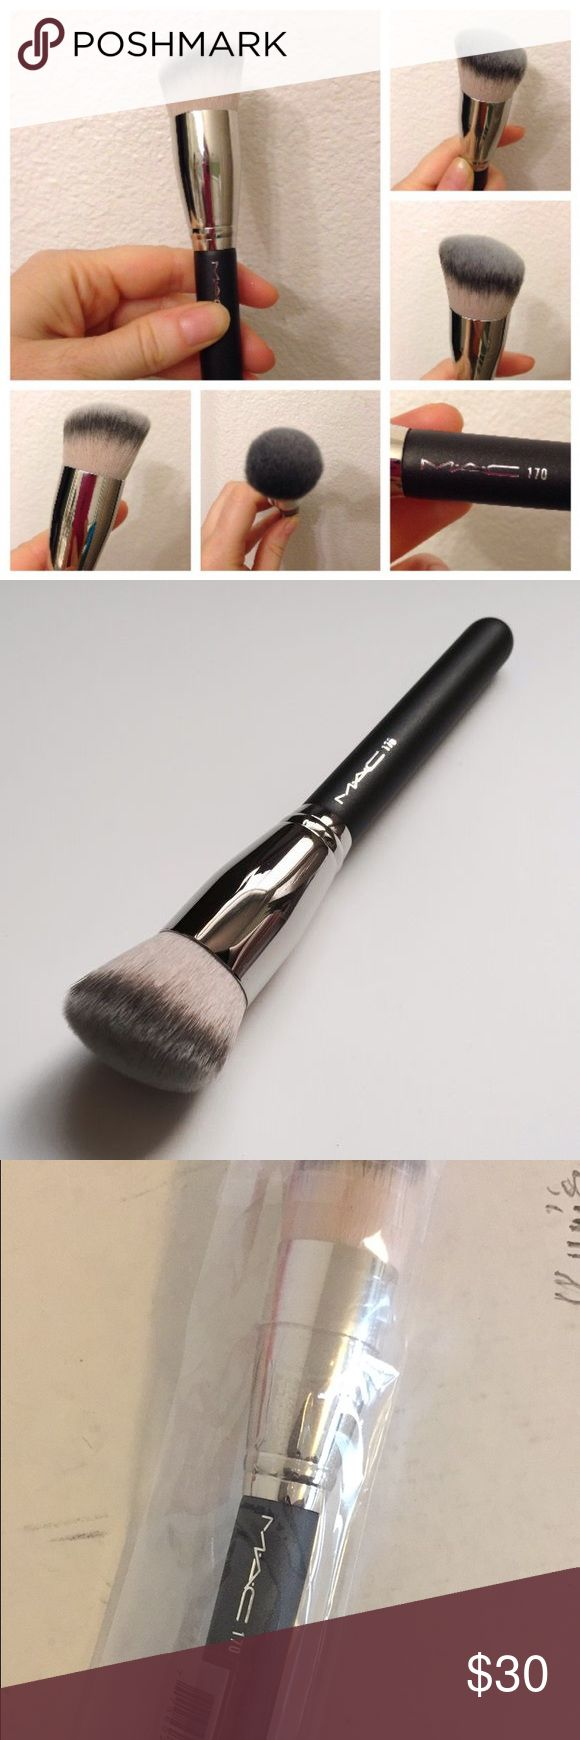 #170 MAC foundation brush Seriously the best foundation brush ever! It gives such a beautiful smooth even finish with liquid or powder foundation. Definitely a must have foundation brush! NEVER USED OR OPEN. MAC Cosmetics Makeup Brushes & Tools